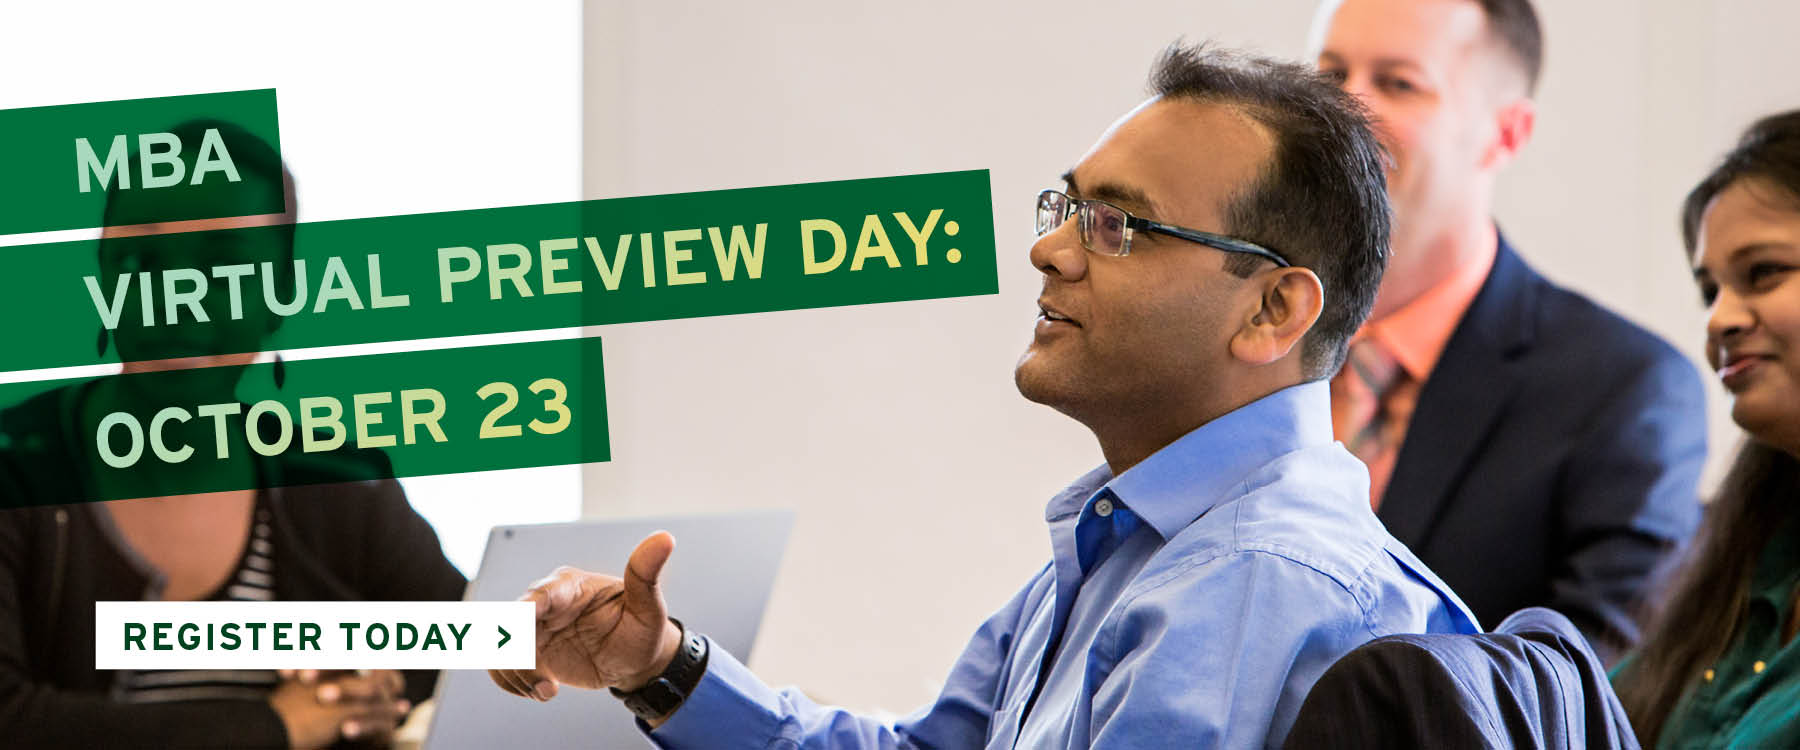 MBA Virtual Preview Day